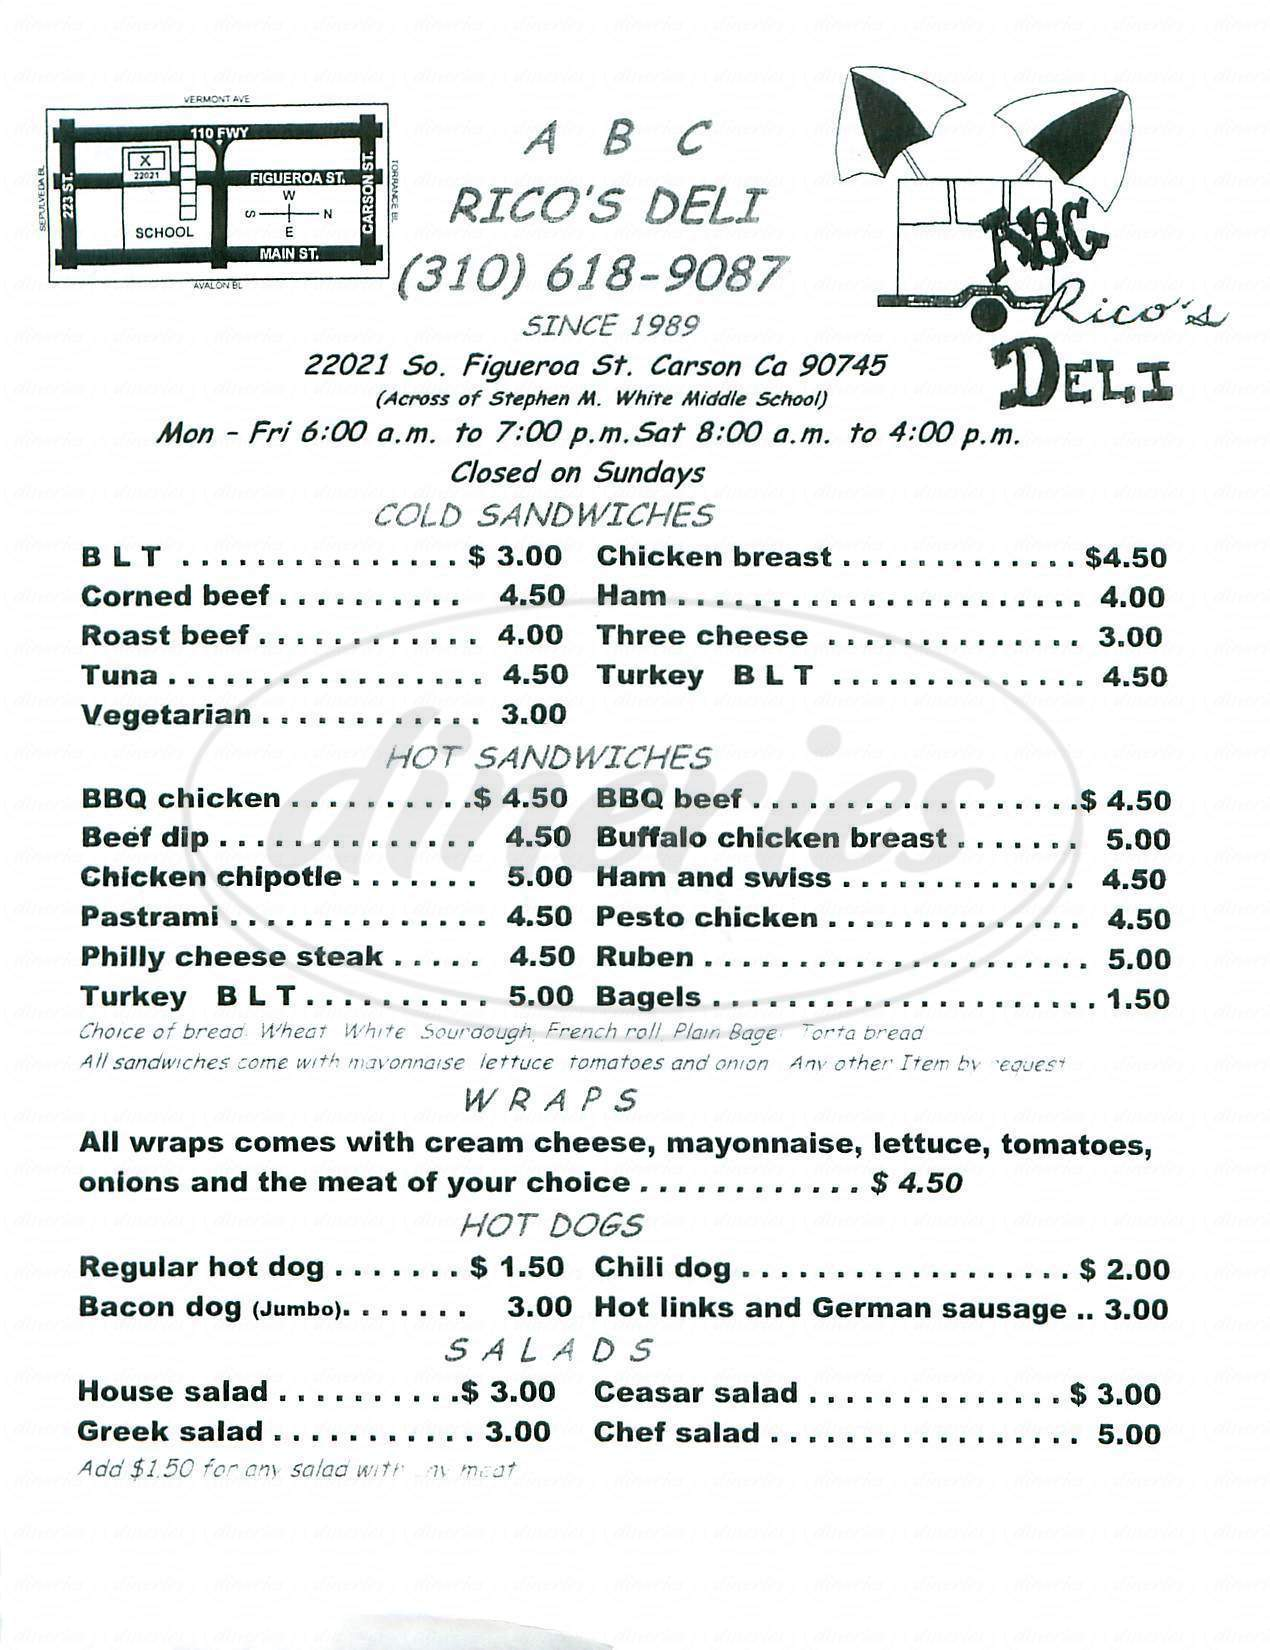 menu for ABC Rico's Deli